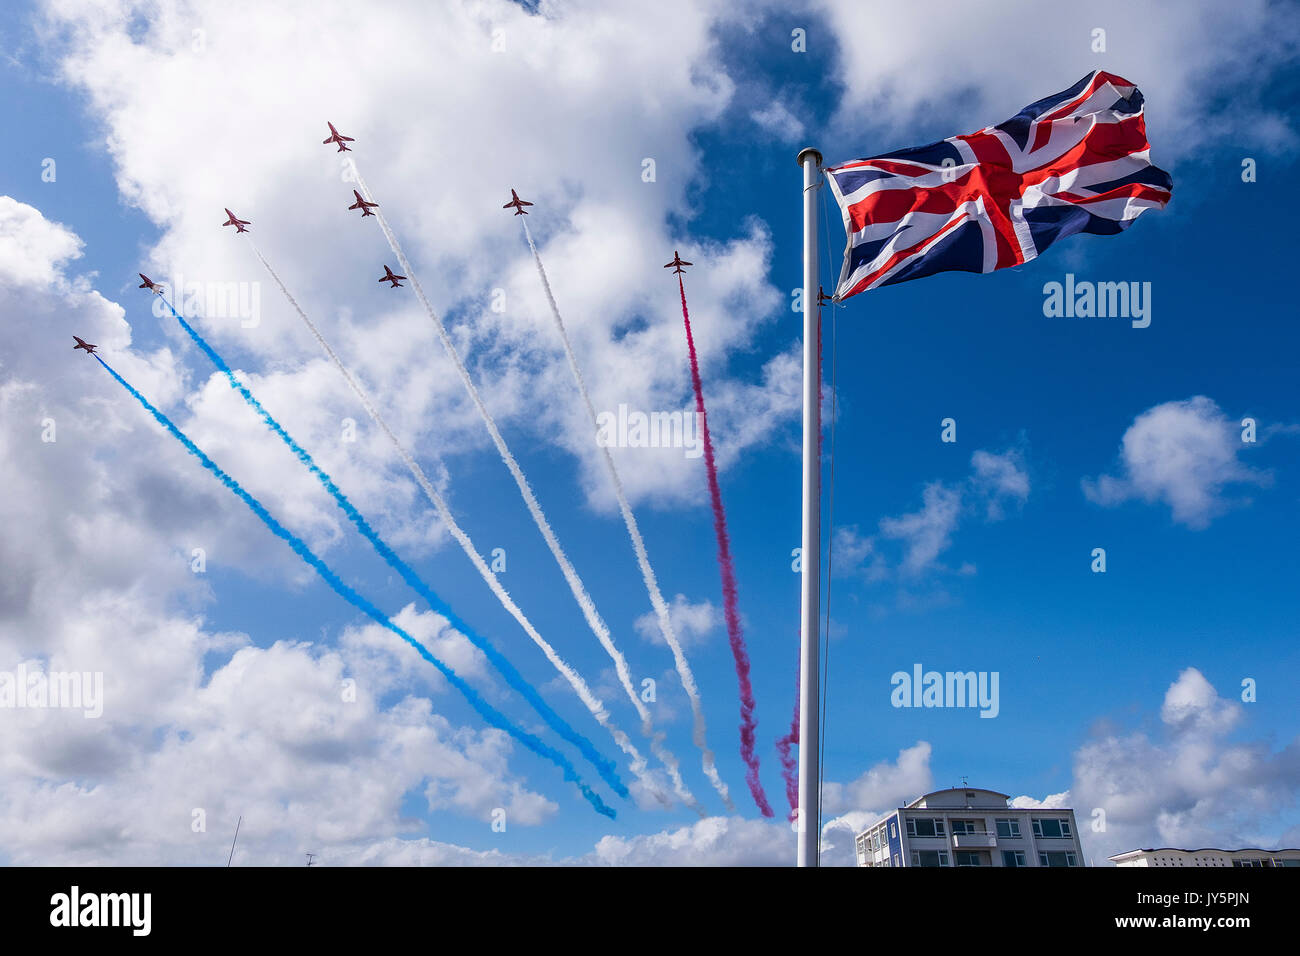 Eastbourne, England, UK. 18th August 2017. Day 2 of Airbourne, the popular south coast seaside airshow on its 25th anniversary. The Red Arrows RAF aerobatic team arrive, overflying a union flag on the Martello Tower on Eastbourne seafront. Credit: Malcolm Park / Alamy Live News - Stock Image